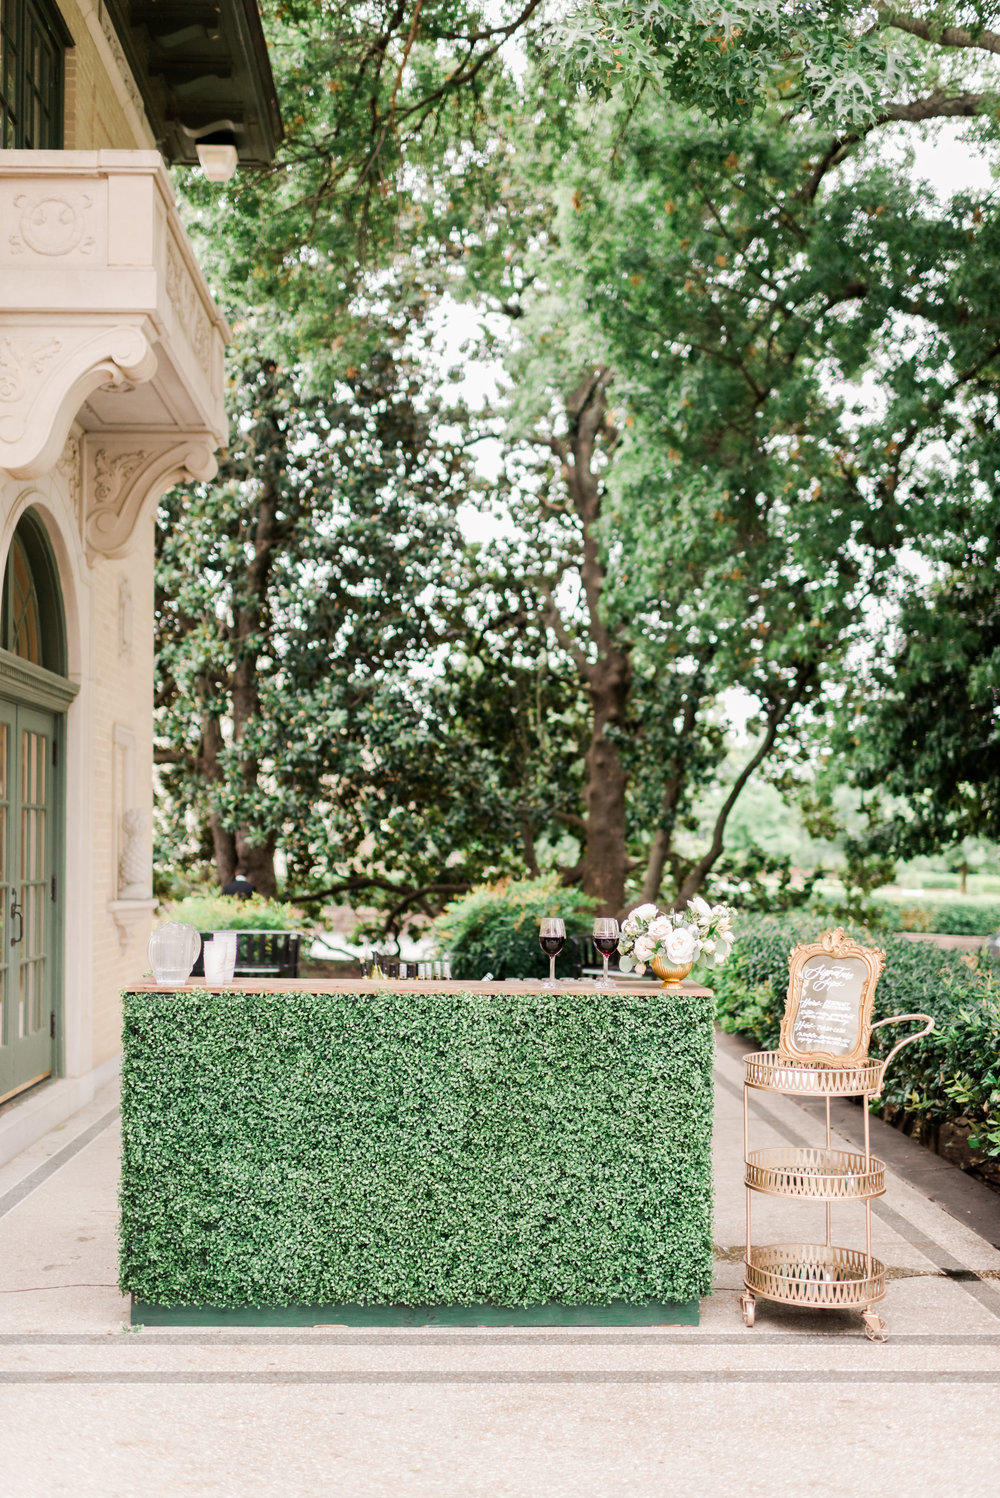 The Mansion at Woodward Park Tulsa Oklahoma Wedding_Valorie Darling Photography-6374.jpg